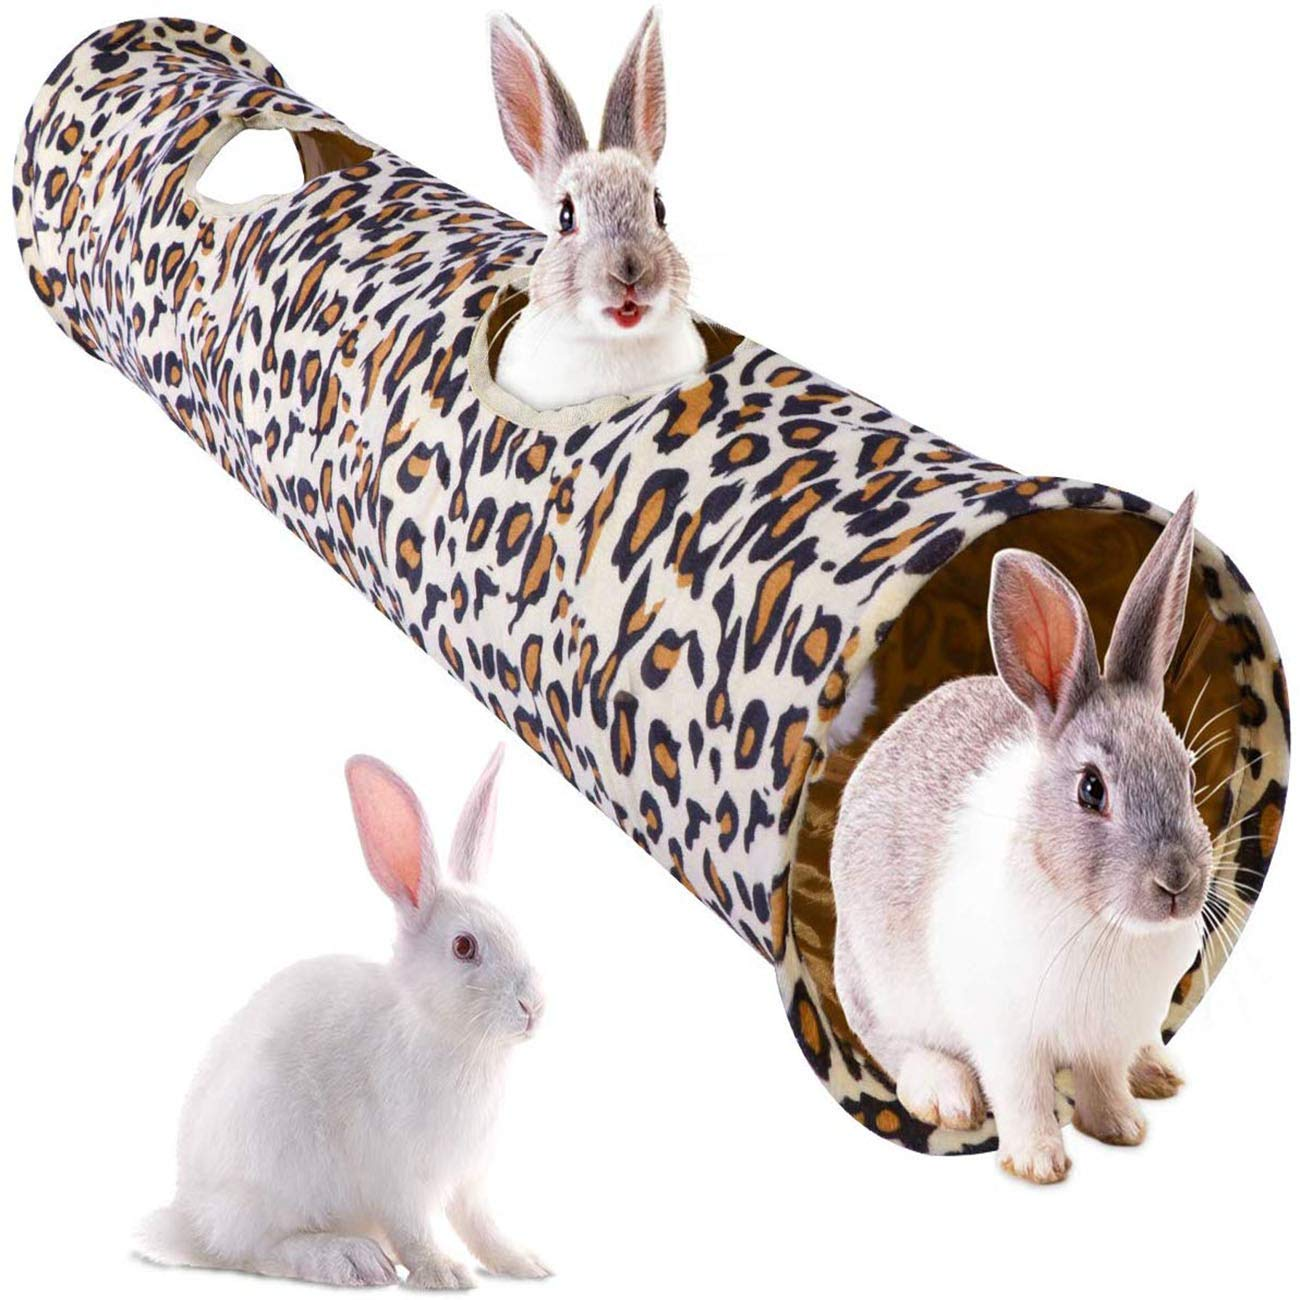 Li-HIM Rabbit Tunnel/Cat Tunnel, with Hang Ball Peek Hole Collapsible and Portable Soft Durable for Cats Puppy Rabbits by Li-HIM